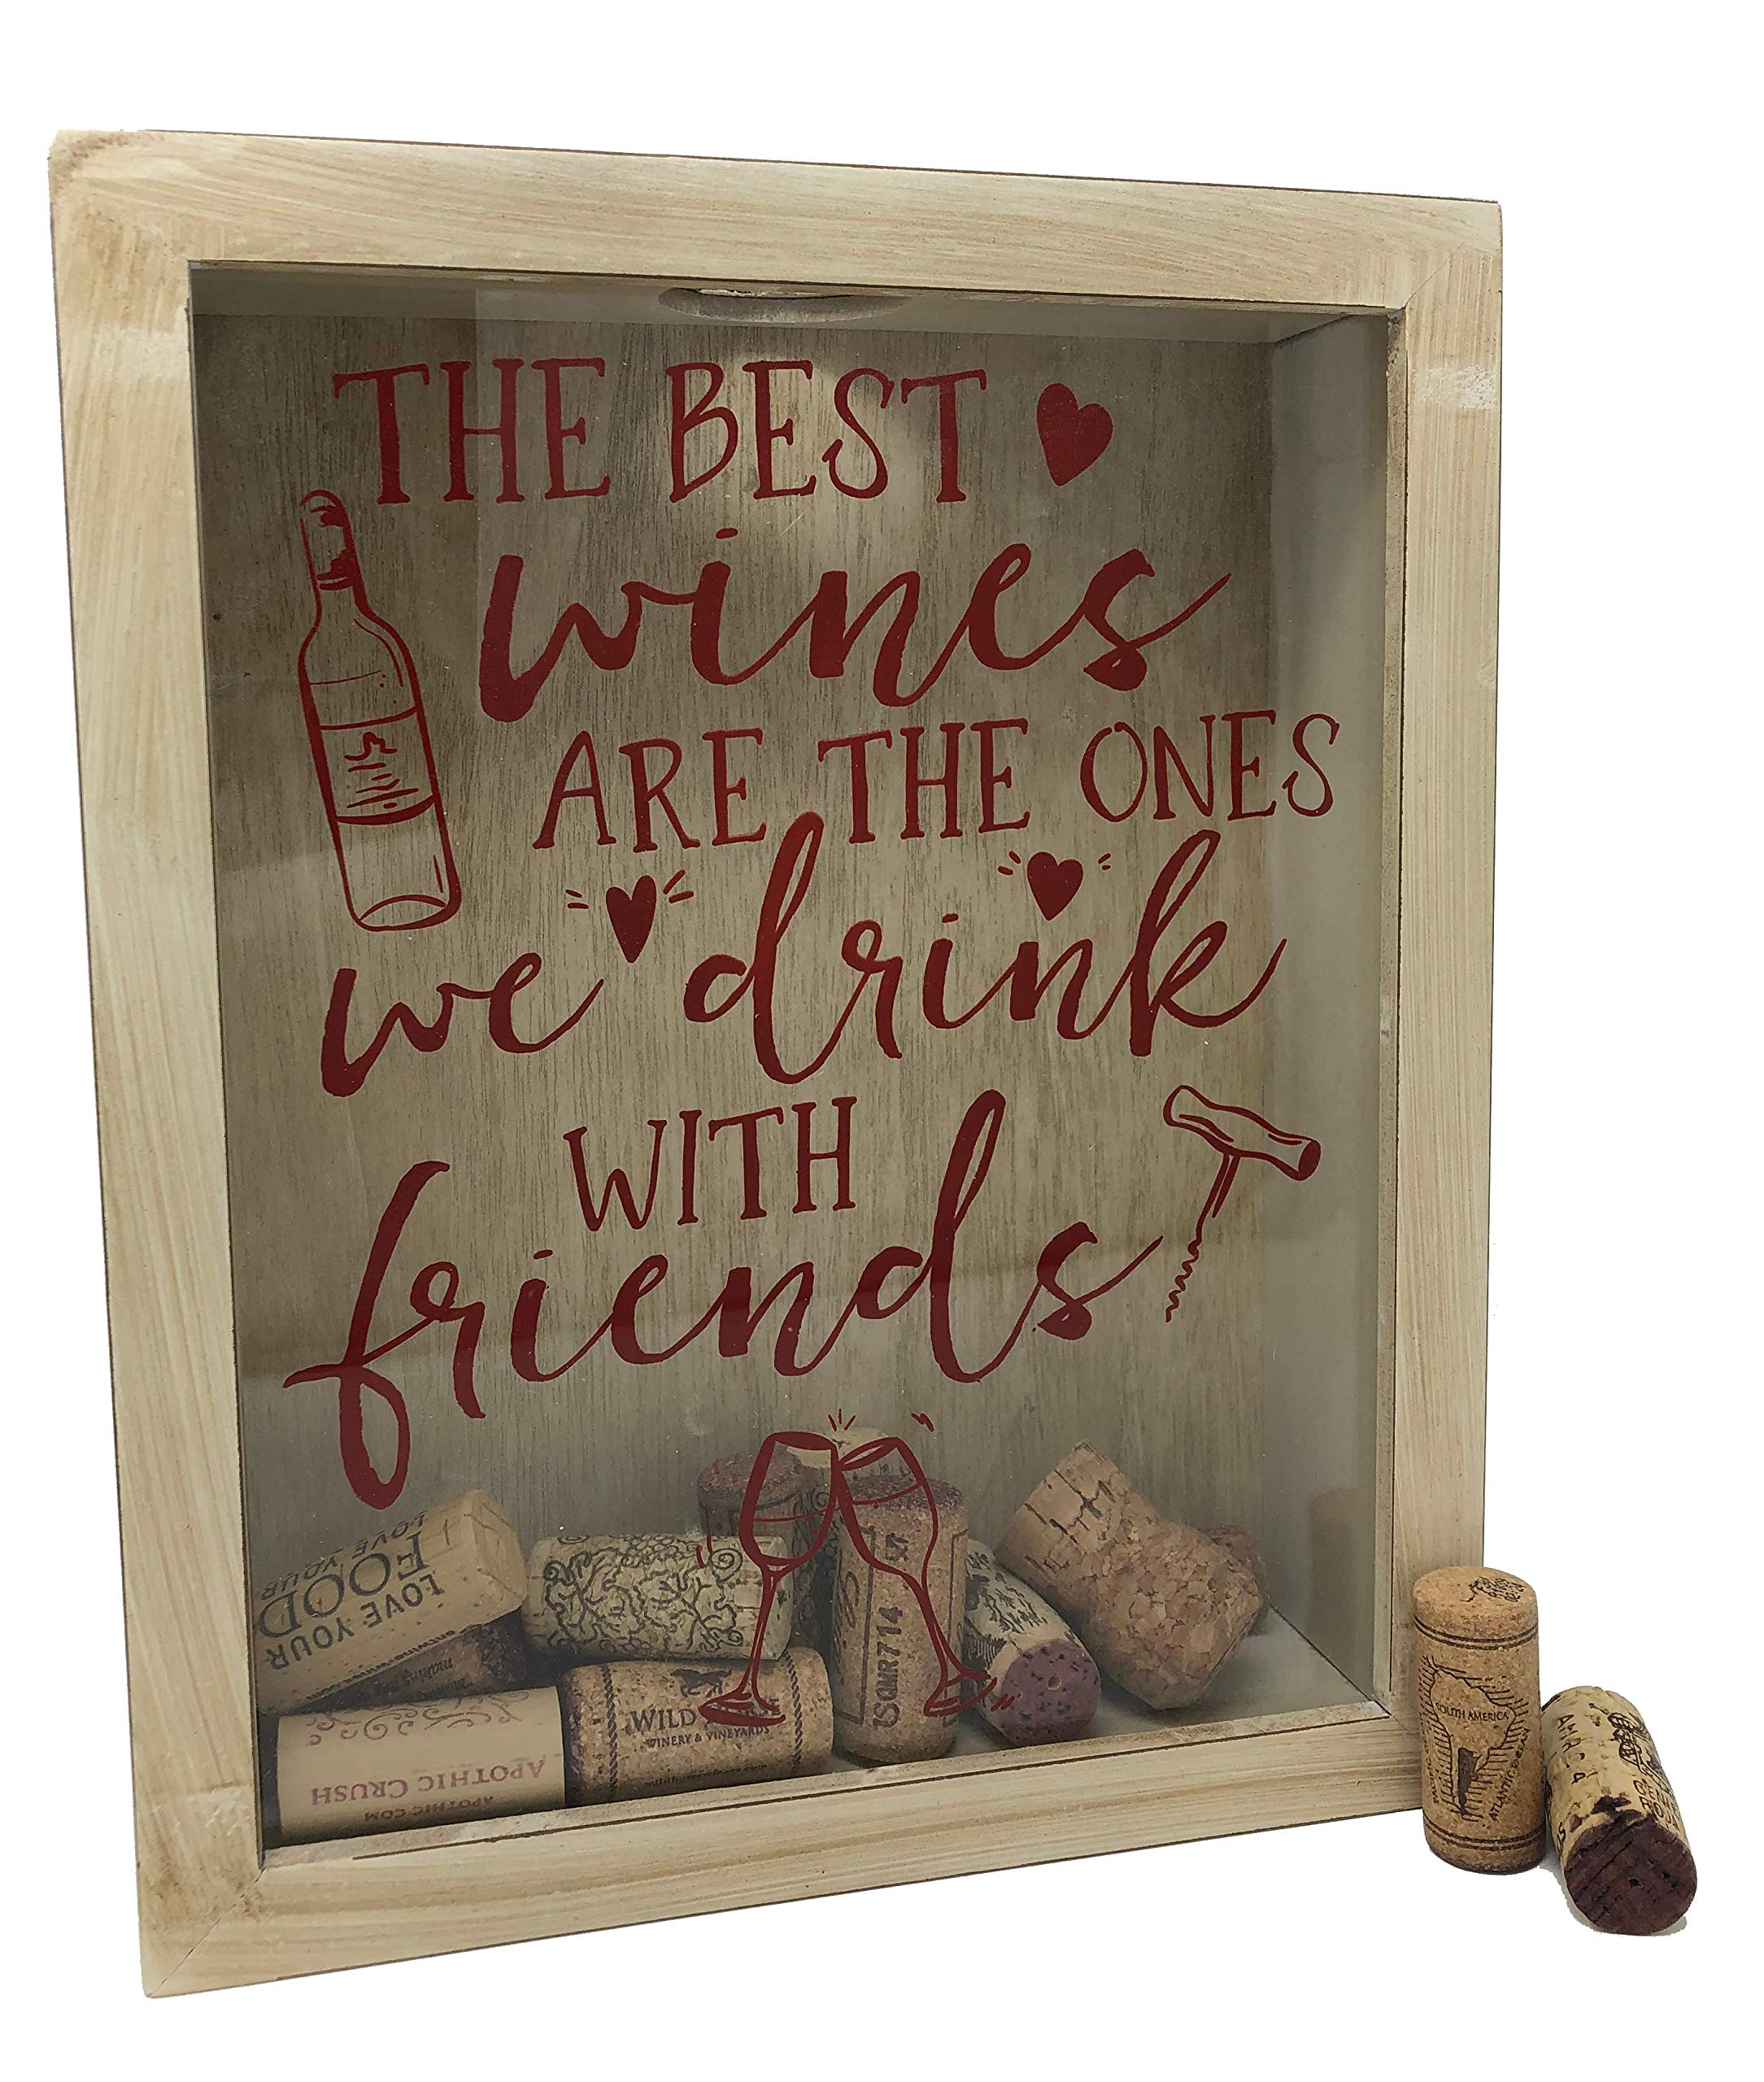 Napa Gift Store Wine Cork Shadow Box & Display Case in Rustic White - Holds Over 60 Corks - 11'' x 9'' - Free Stand or Wall Hanging - Wine Decor, Cork Holder for Kitchen & Home